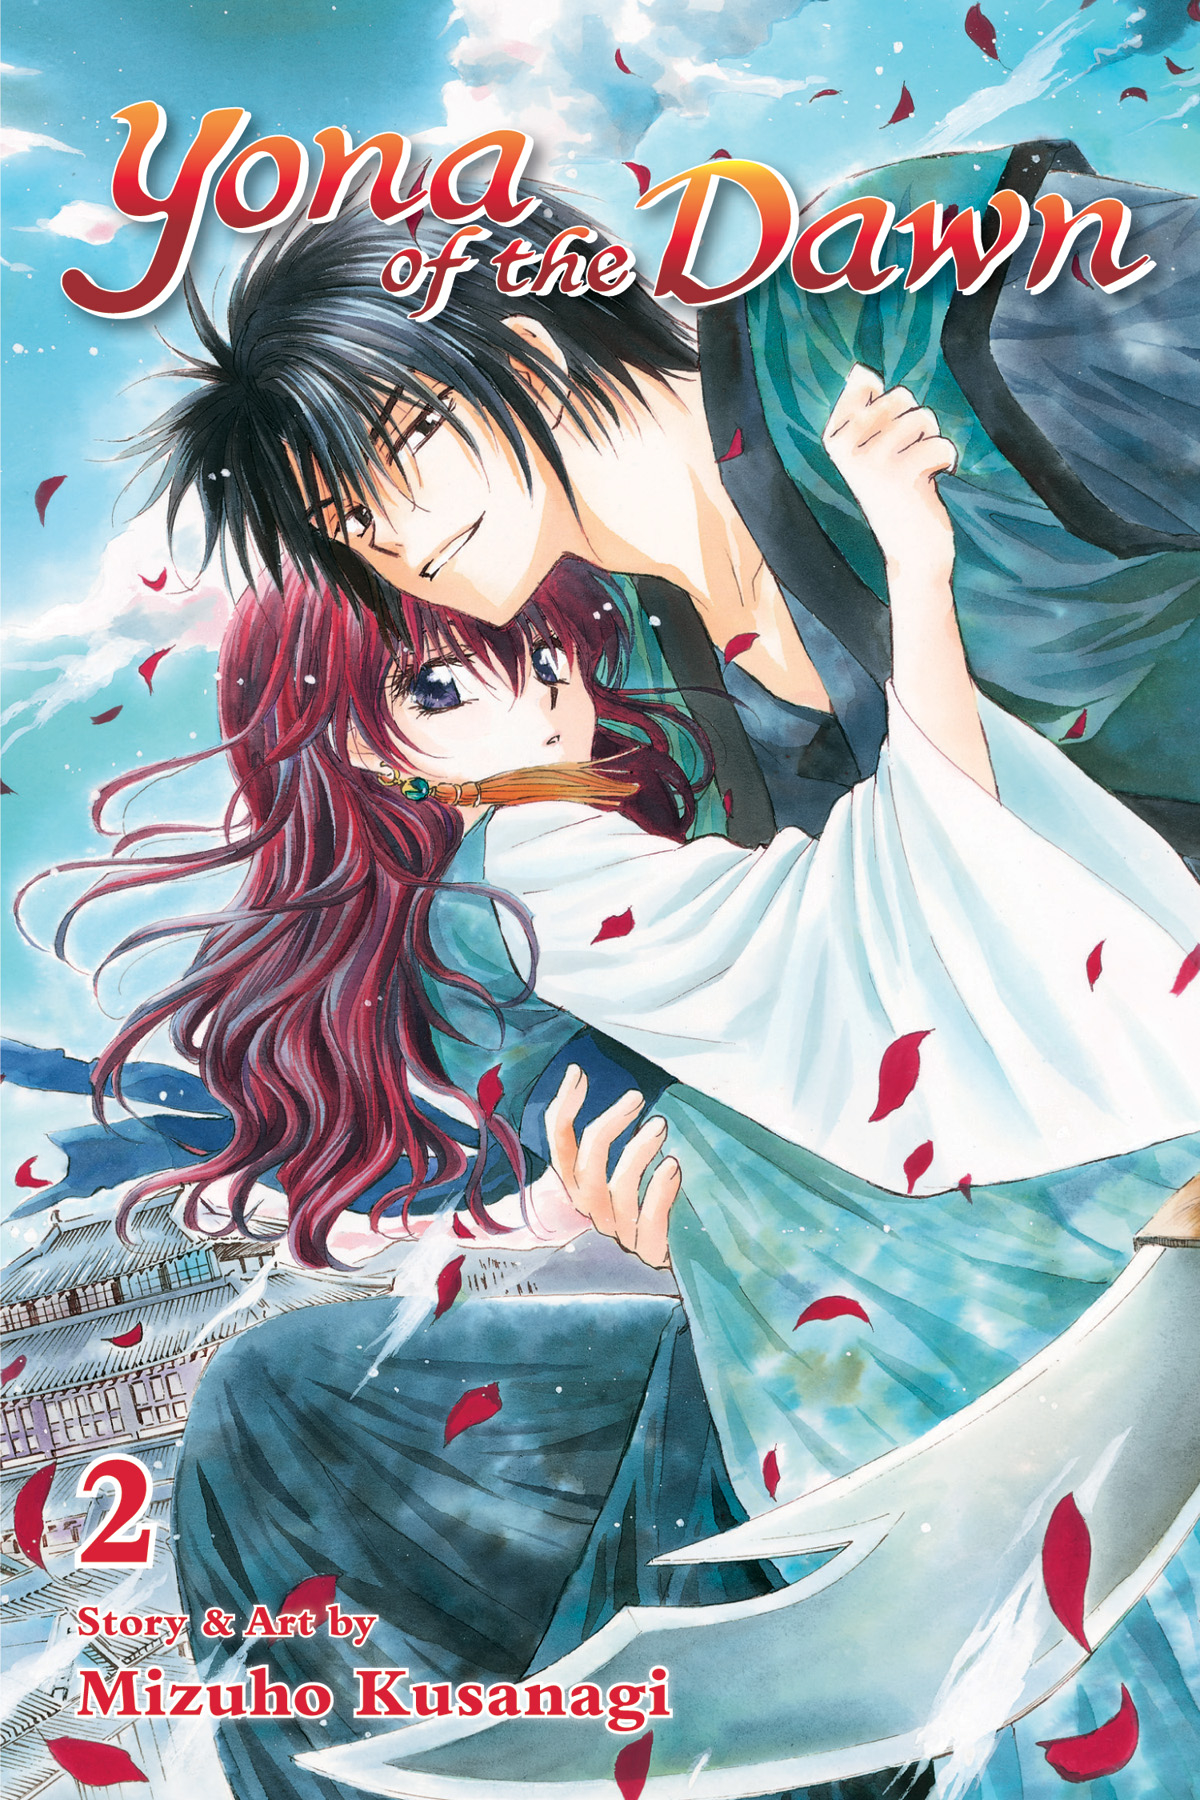 YONA OF THE DAWN GN VOL 02